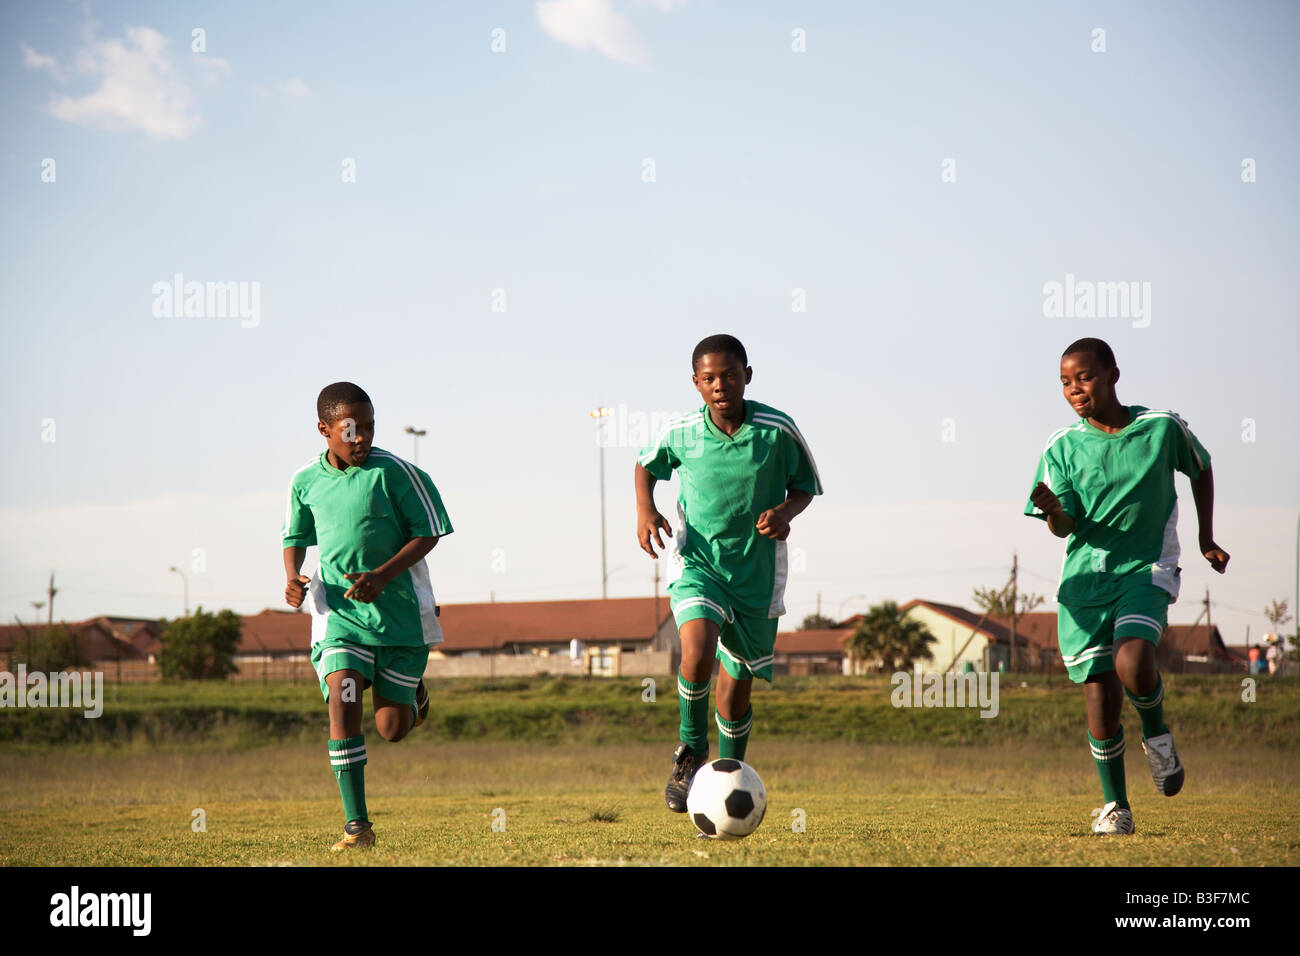 13MA-038 © Monkeyapple  aFRIKA Collection  Great Stock !  Young team playing soccer - Stock Image